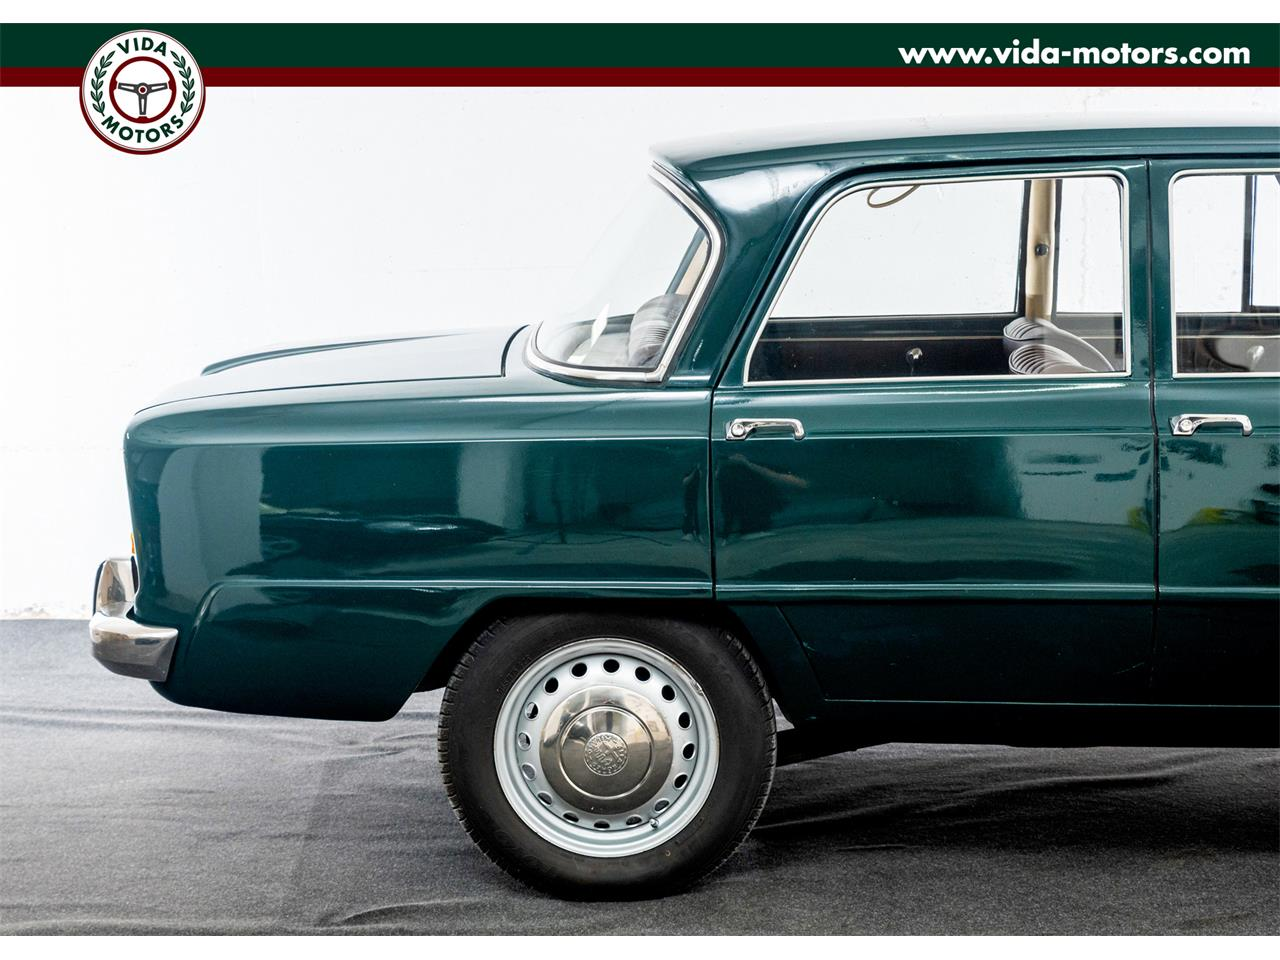 1966 Alfa Romeo Giulia 1300 ti (CC-1354130) for sale in Aversa, italia